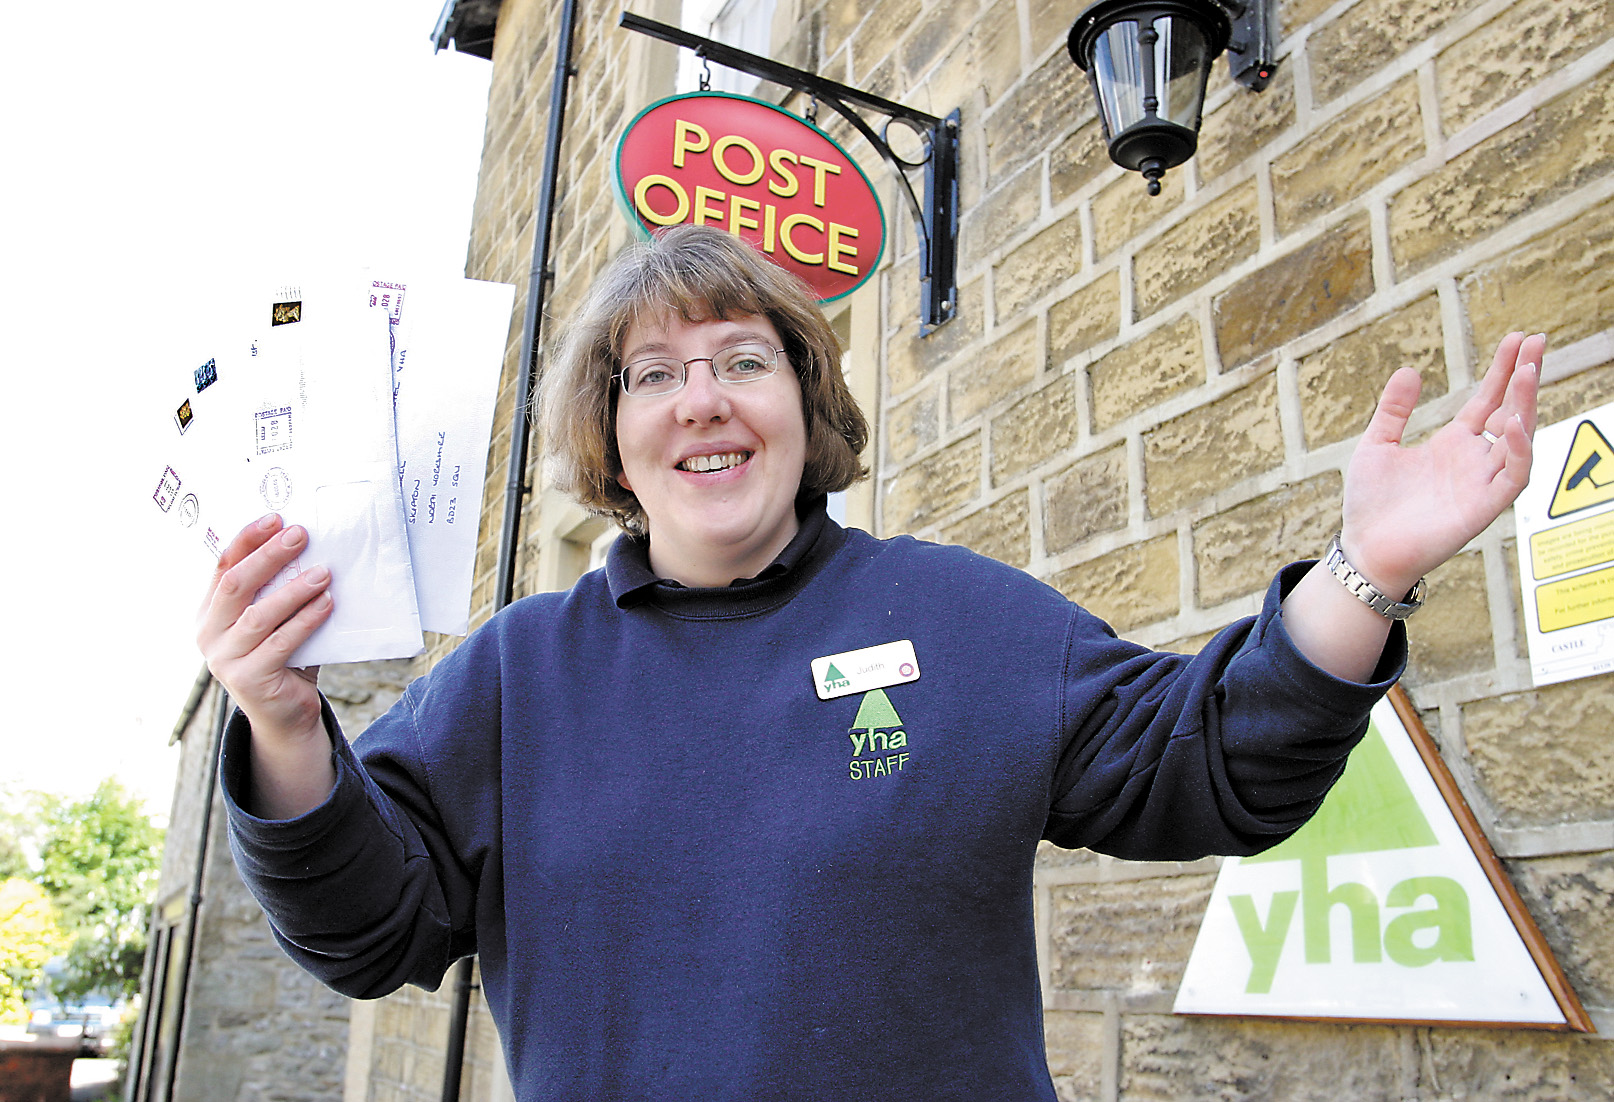 FLASHBACK: Kettlewell Post Office moves to the youth hostel in 2004. Pictured is youth hostel manager Judith Mallams